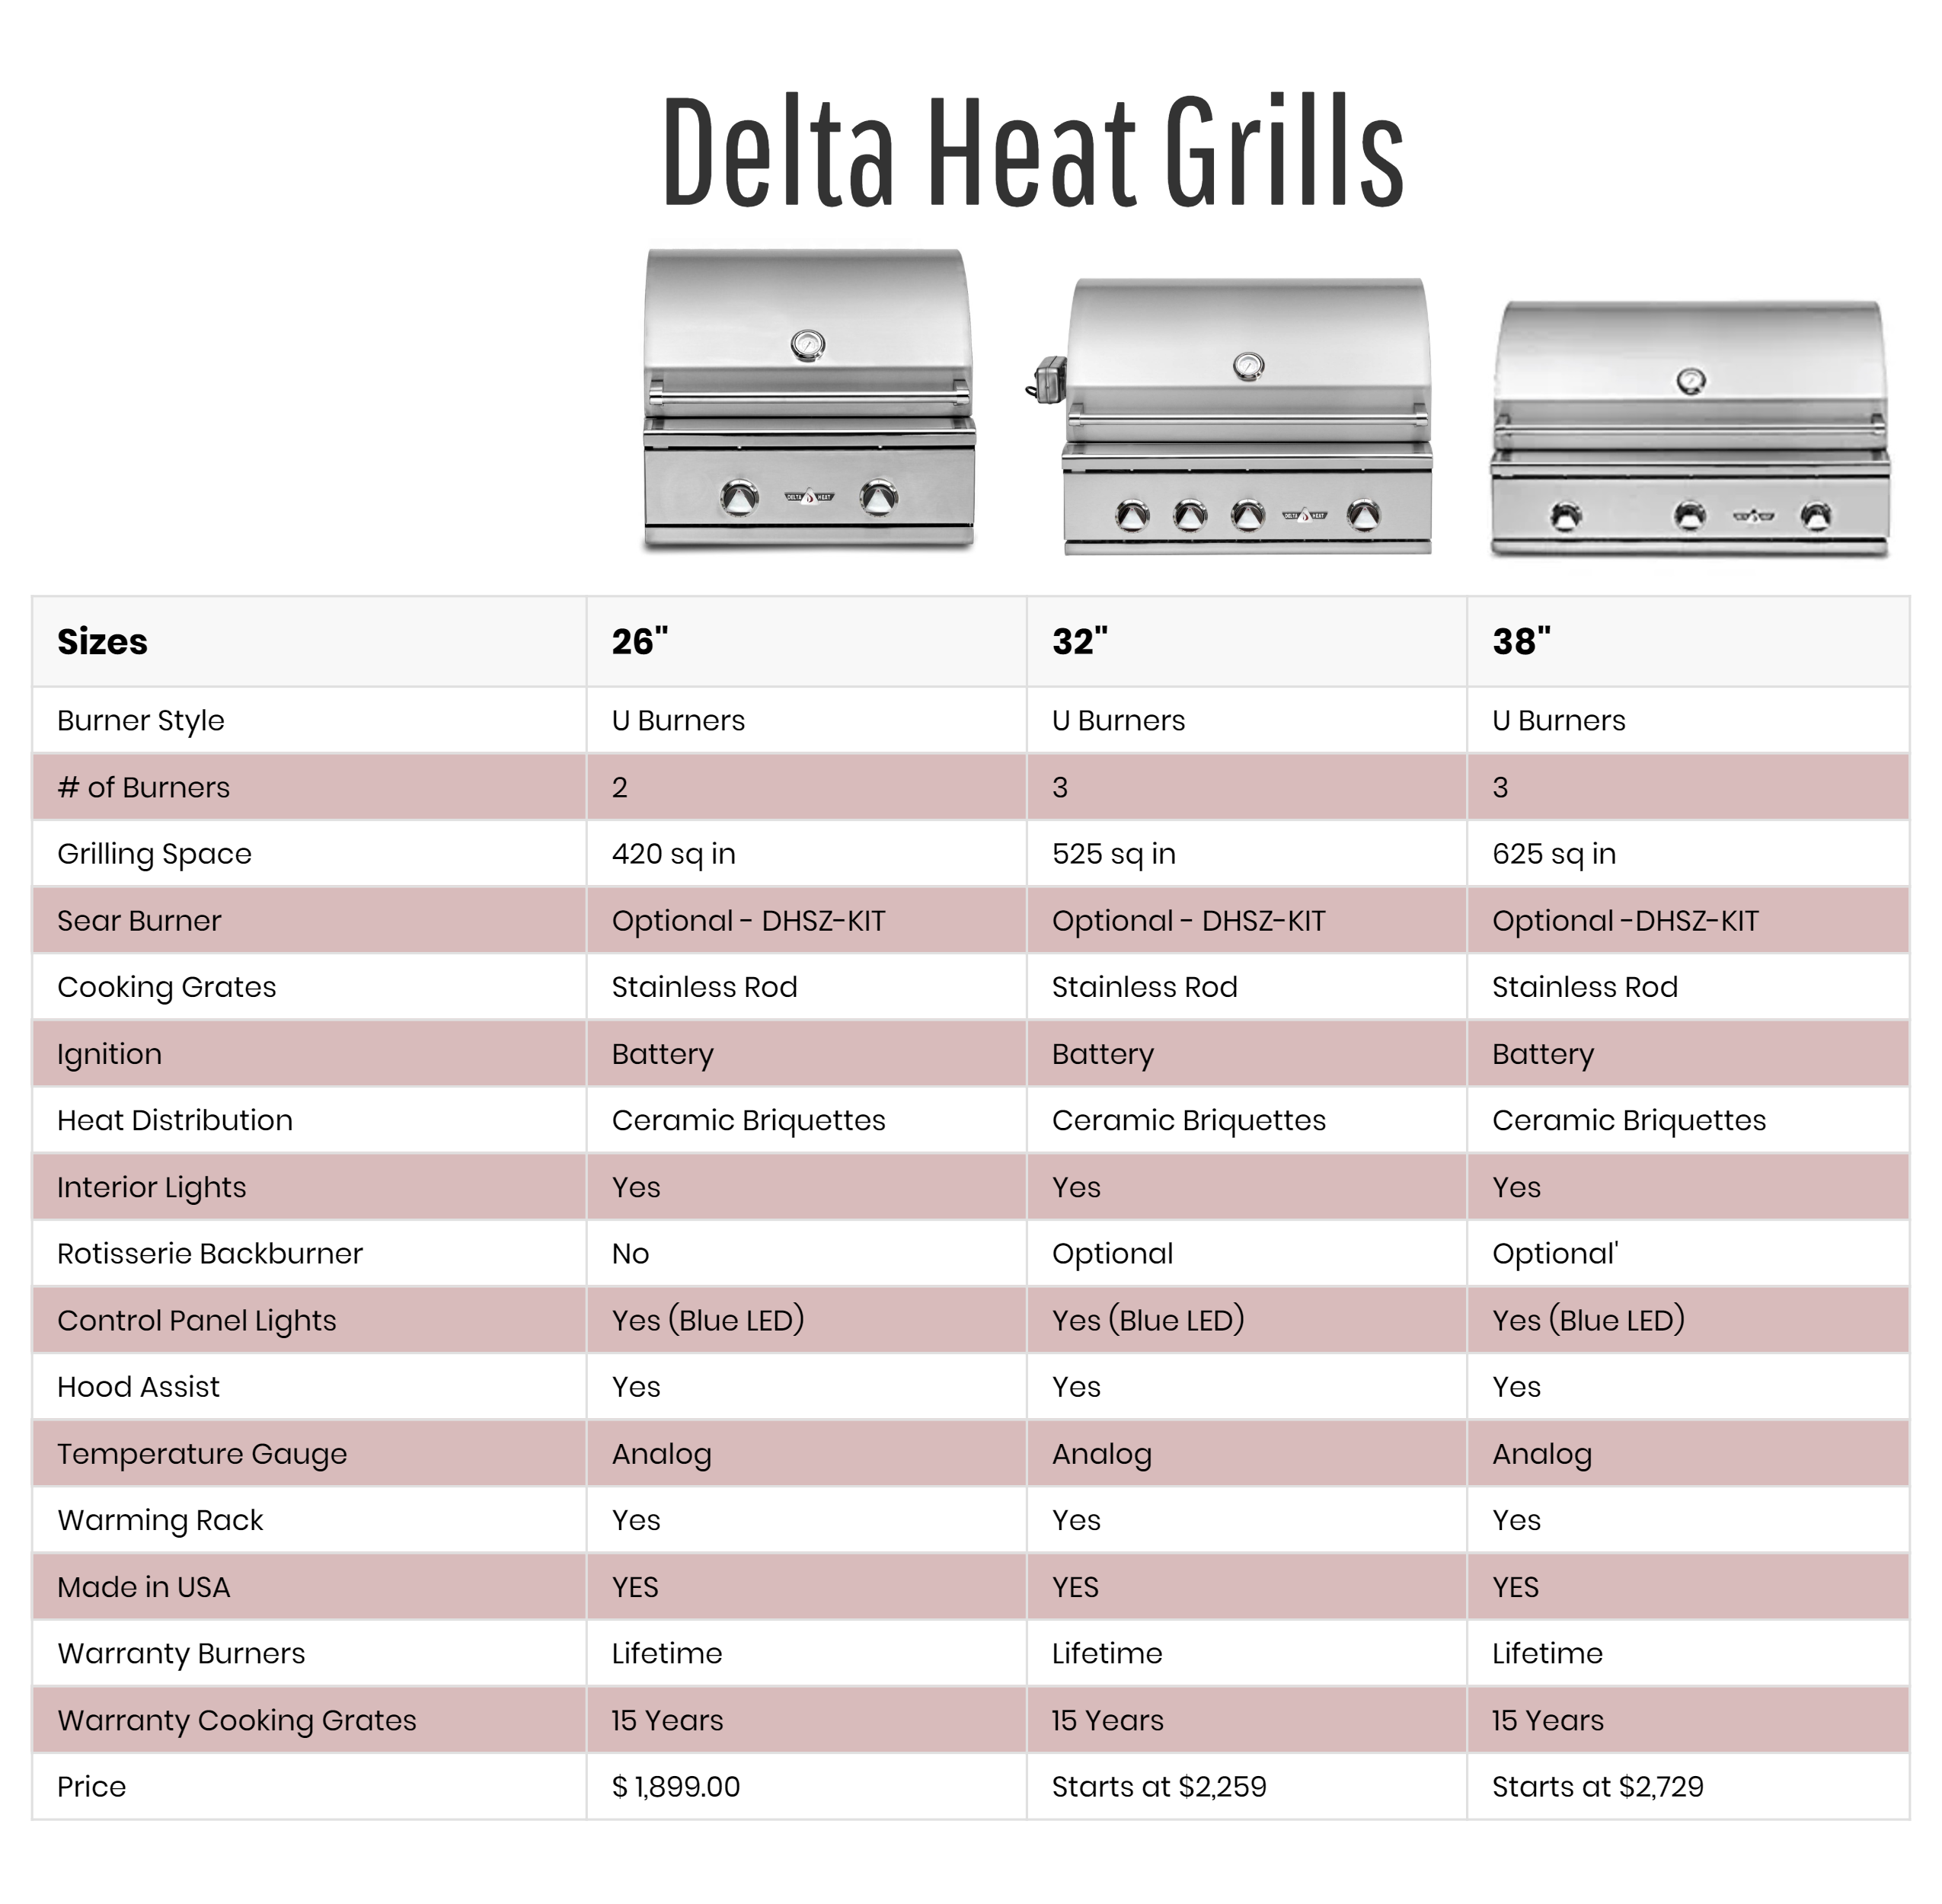 Delta Heat Grill Model Comparison Infographic